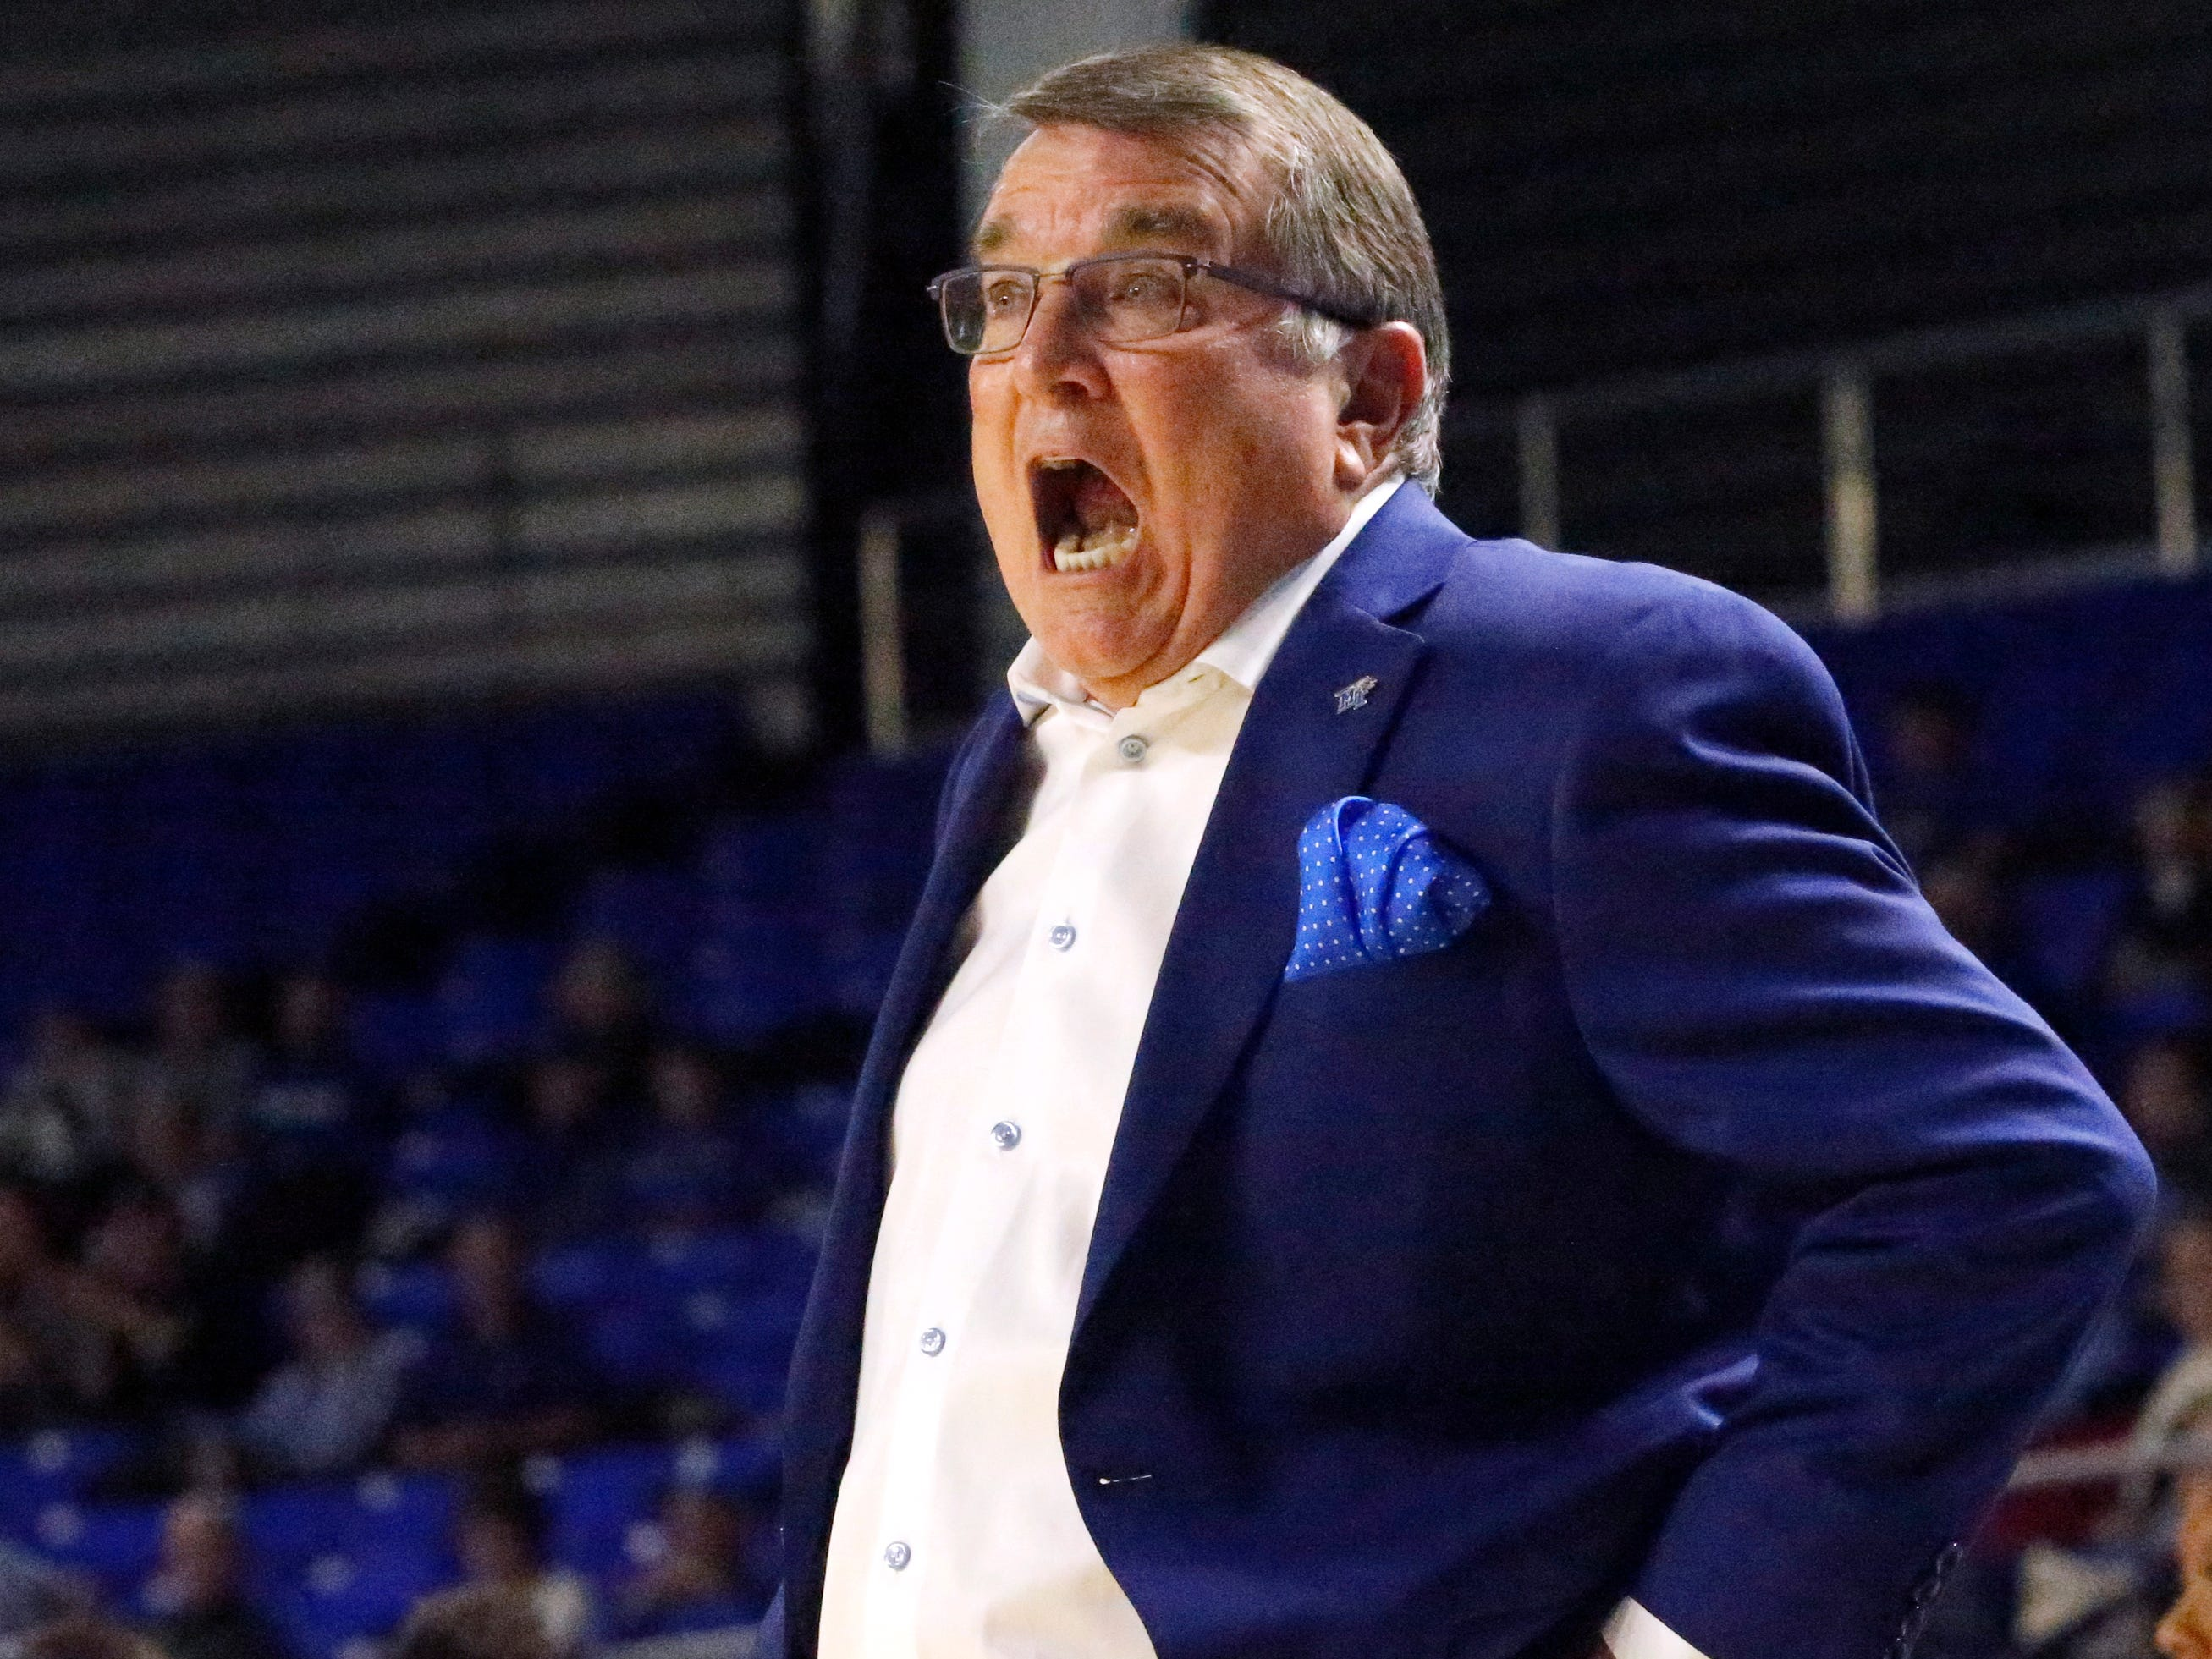 MTSU's head coach Rick Insell on the sidelines during the gam against Rice on Thursday Jan. 24, 2019.